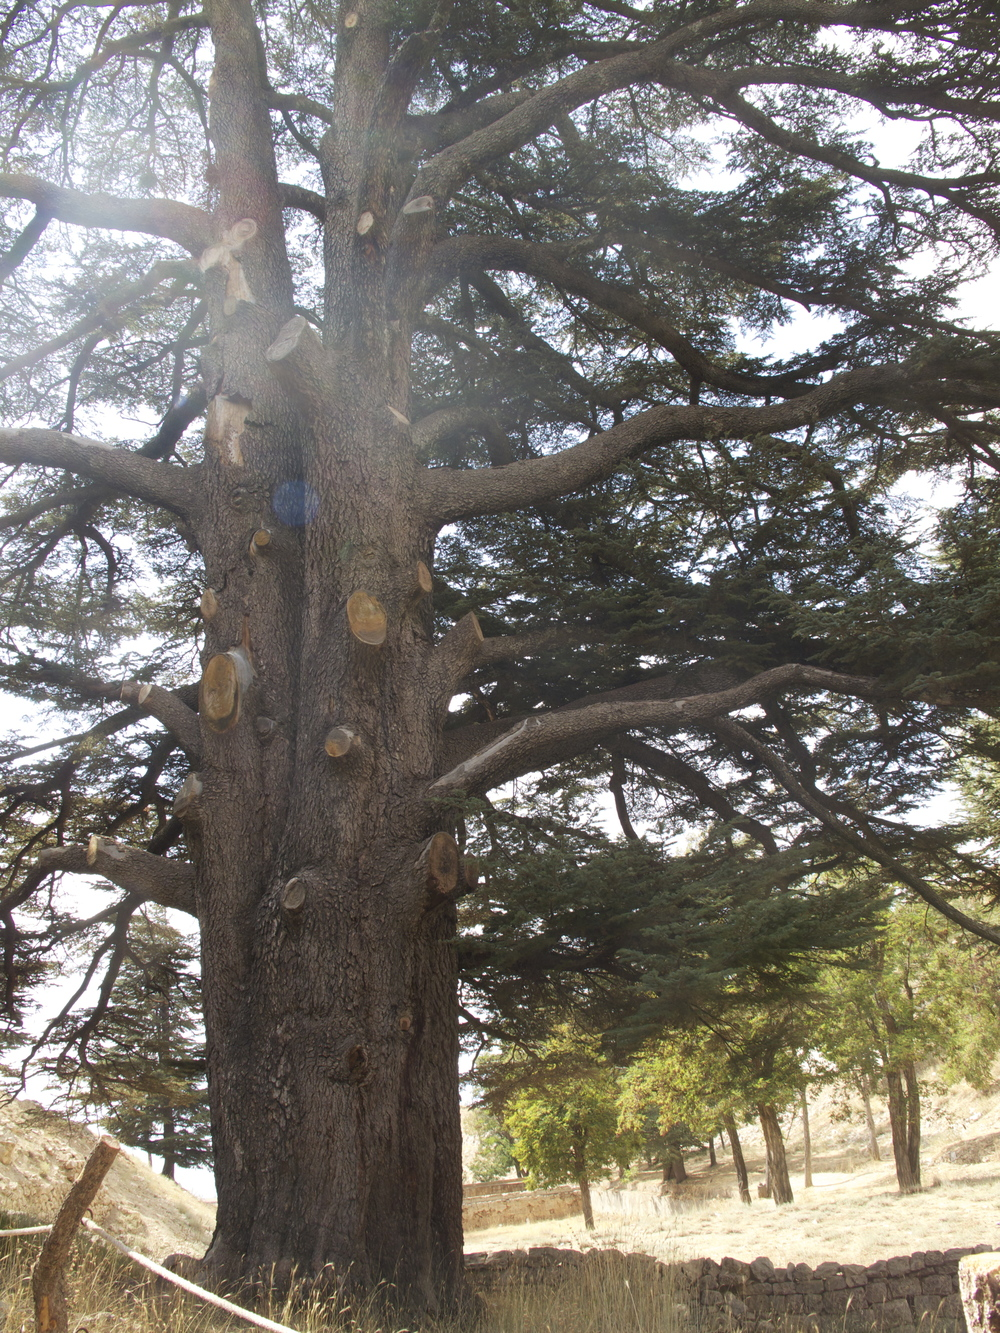 Ancient sacred Cedars of Bsharre, Lebanon, estimated age over 6000 years old.